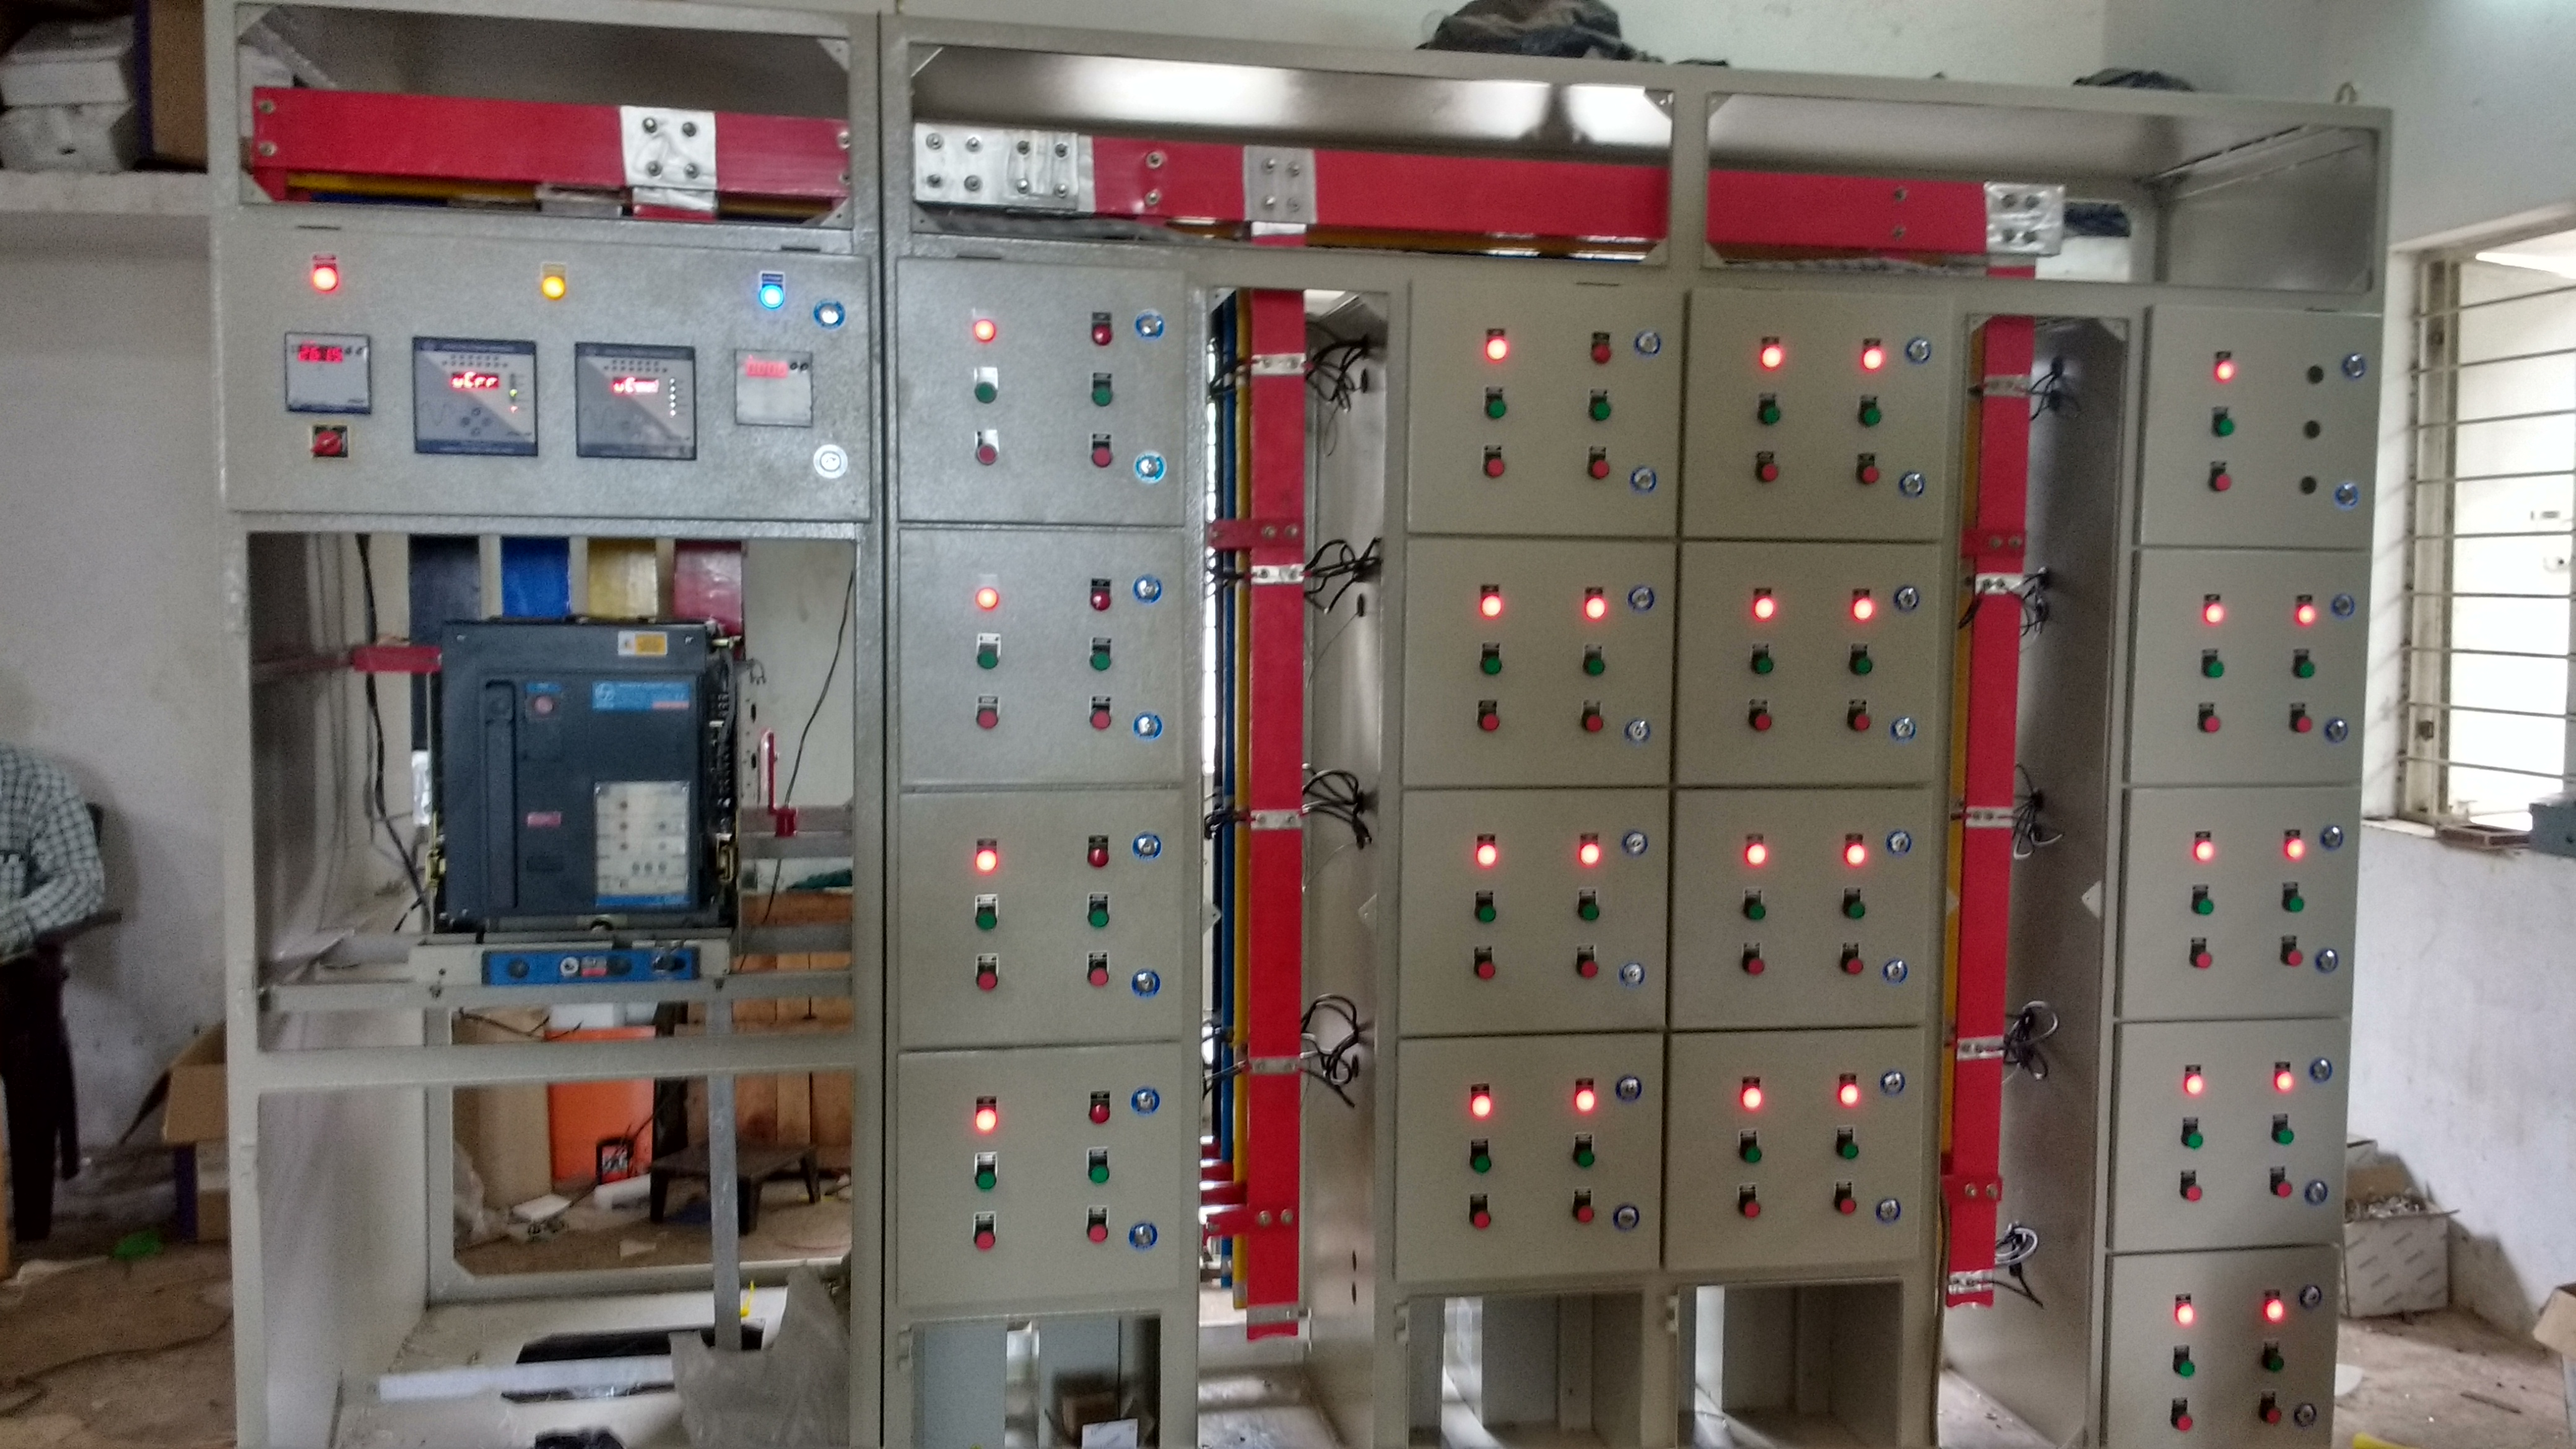 Control Panel Electrical And Services Supplier Panels Share Facebook Twitter Buzz